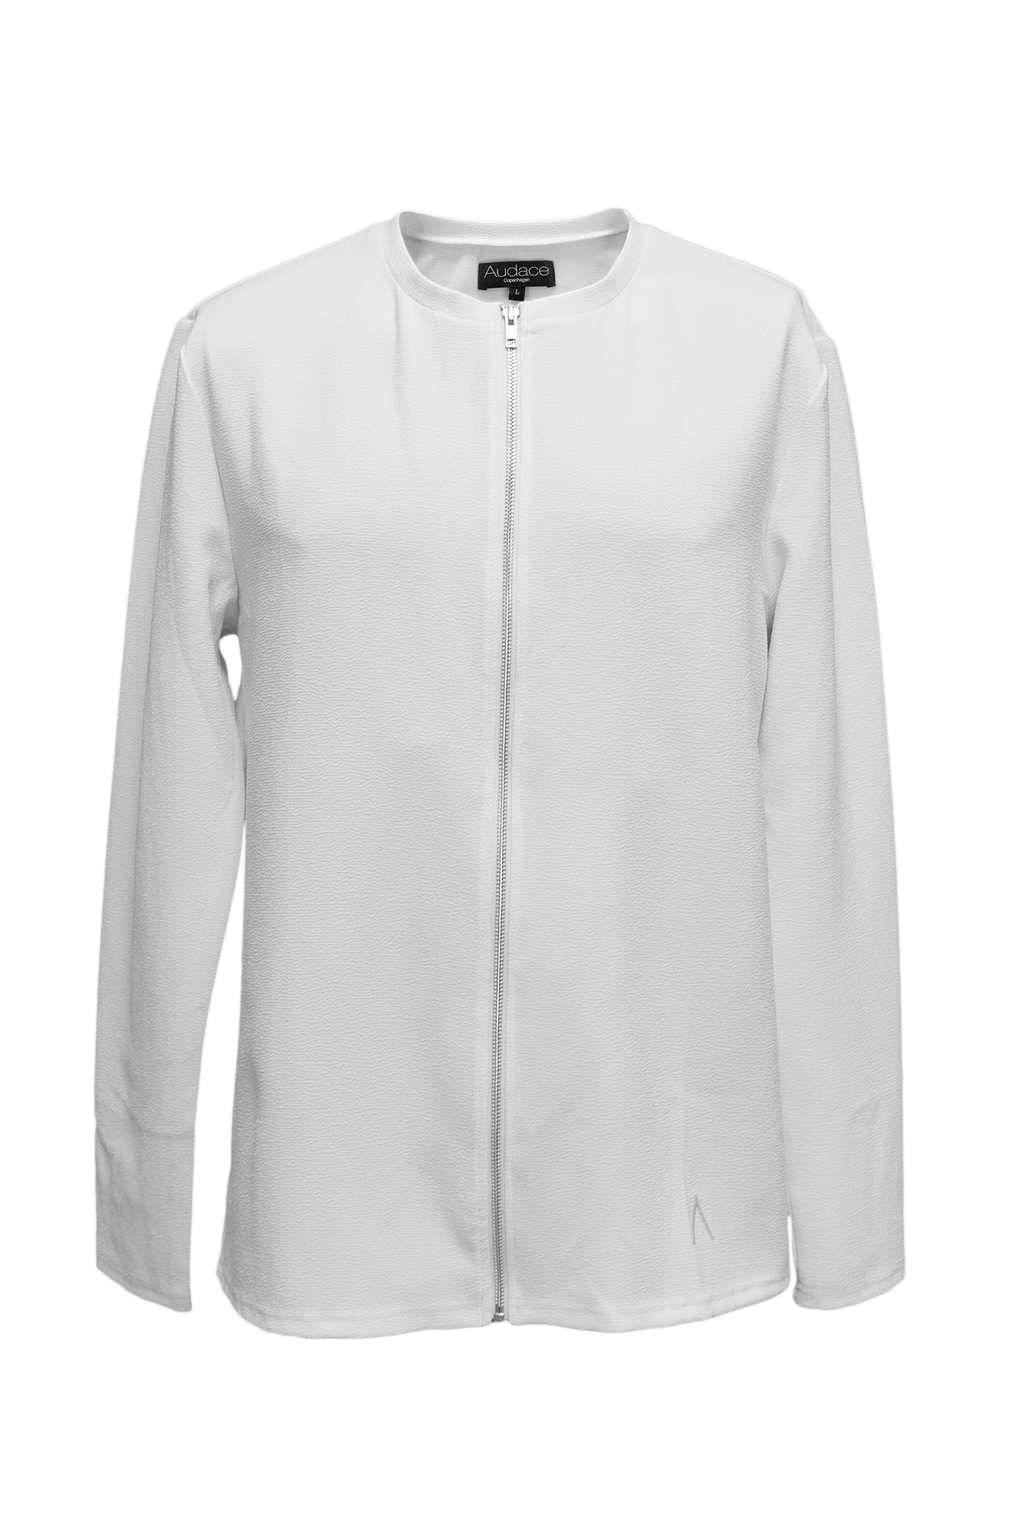 Nygaard Zip Cardigan – White